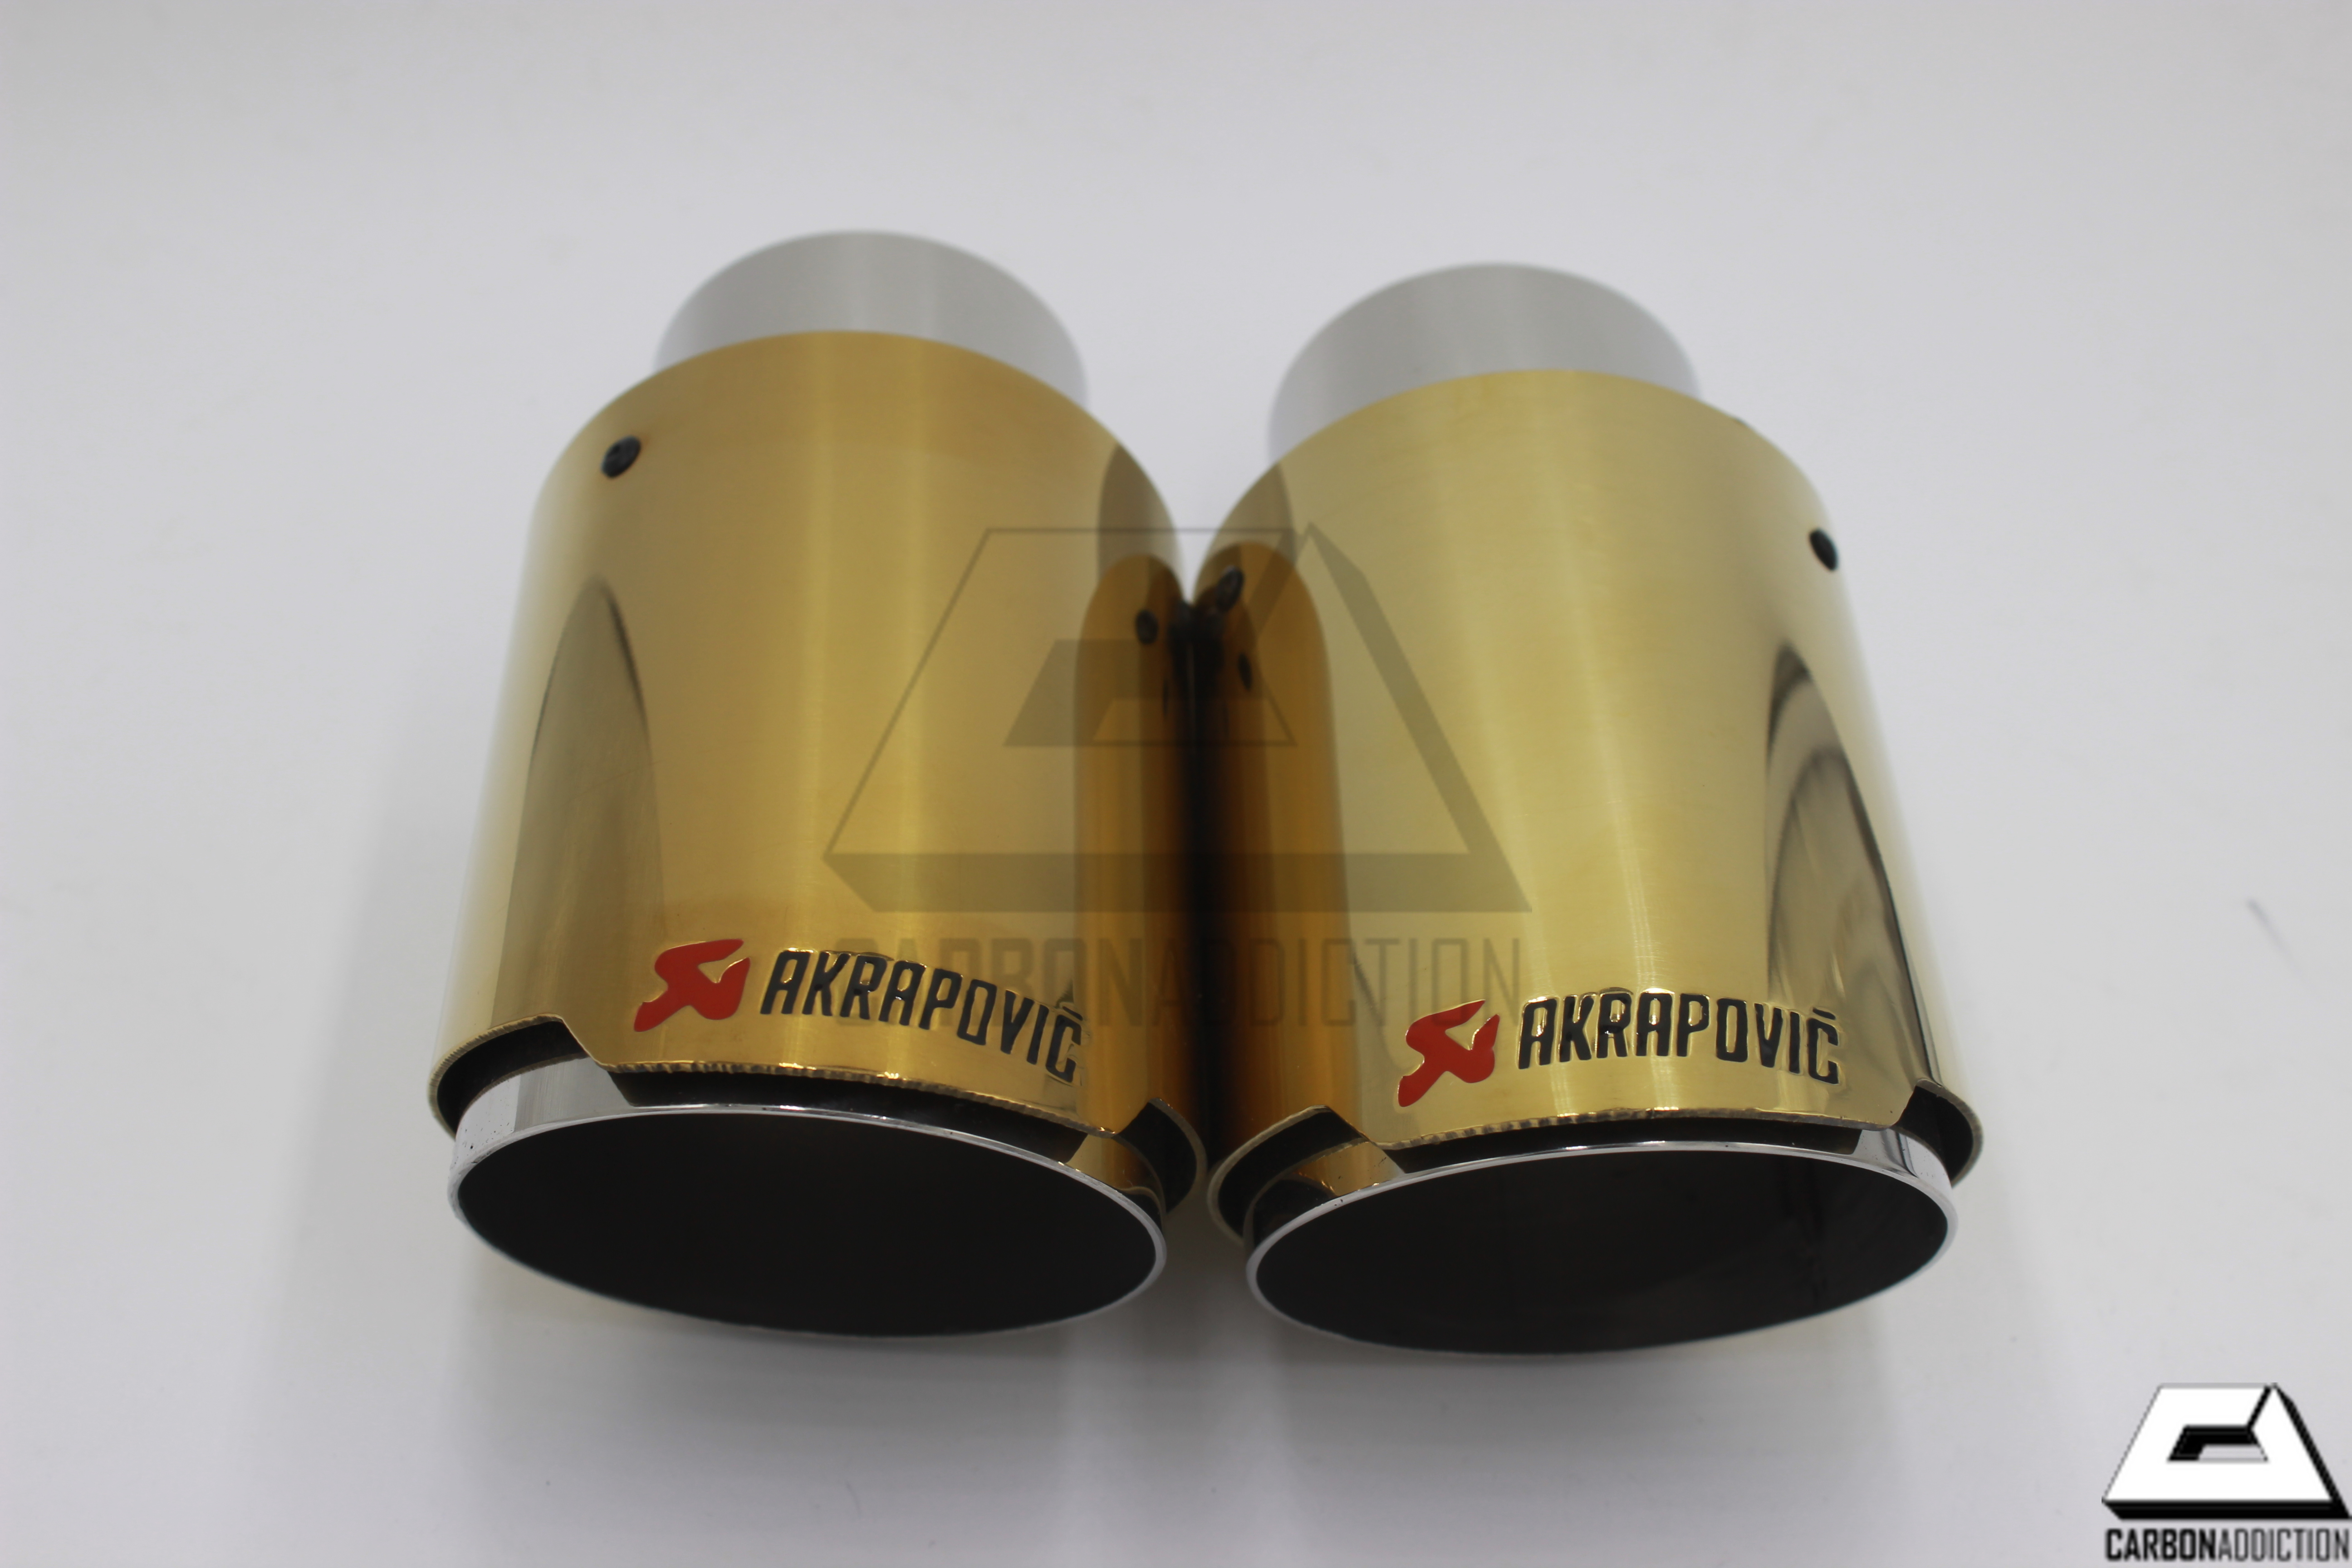 Akrapovic Style Gold Exhaust Tips – Carbon Addiction